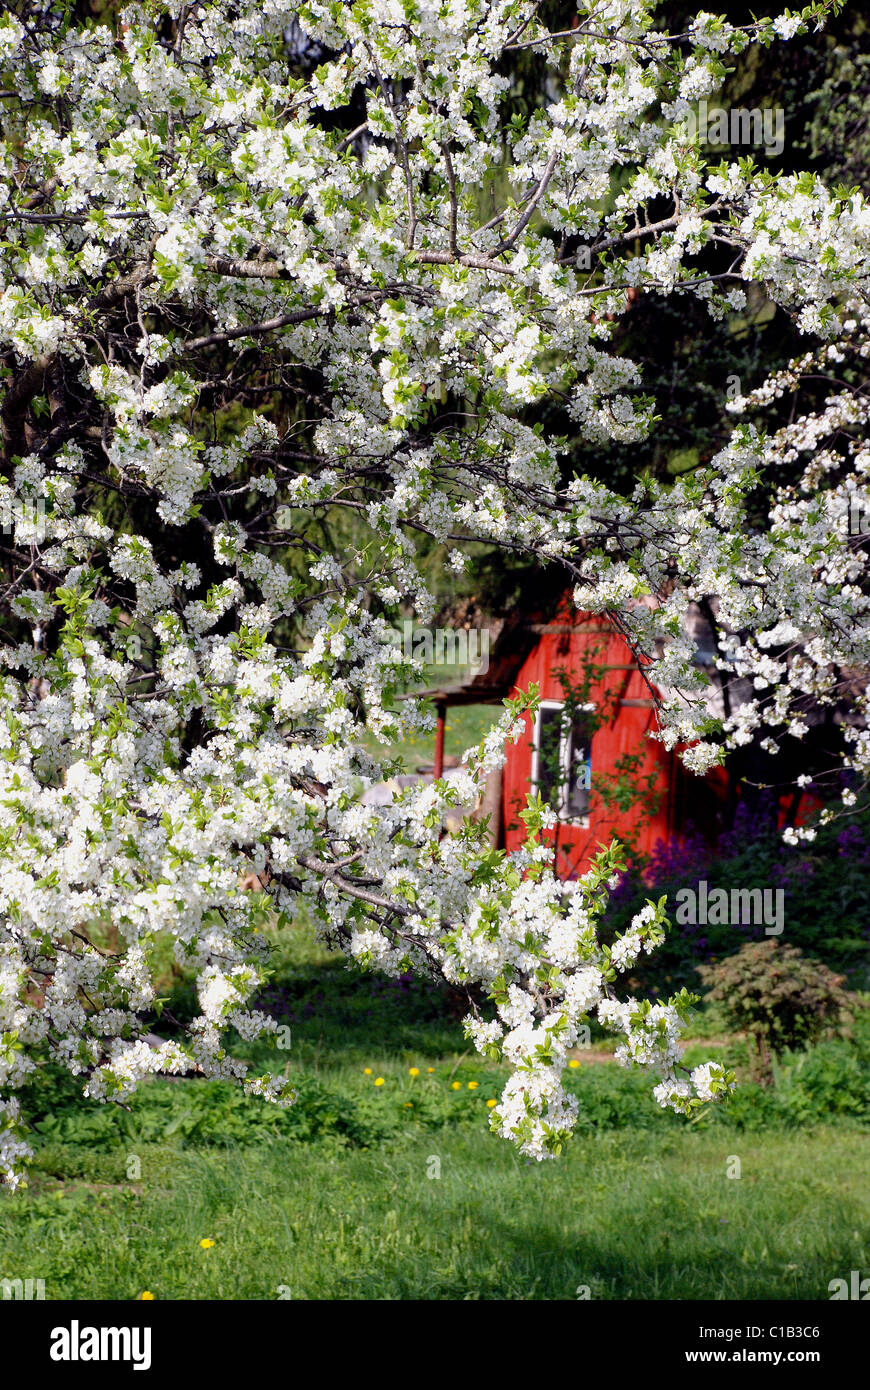 wonderfull plump tree with many little blooms in sunny day. - Stock Image